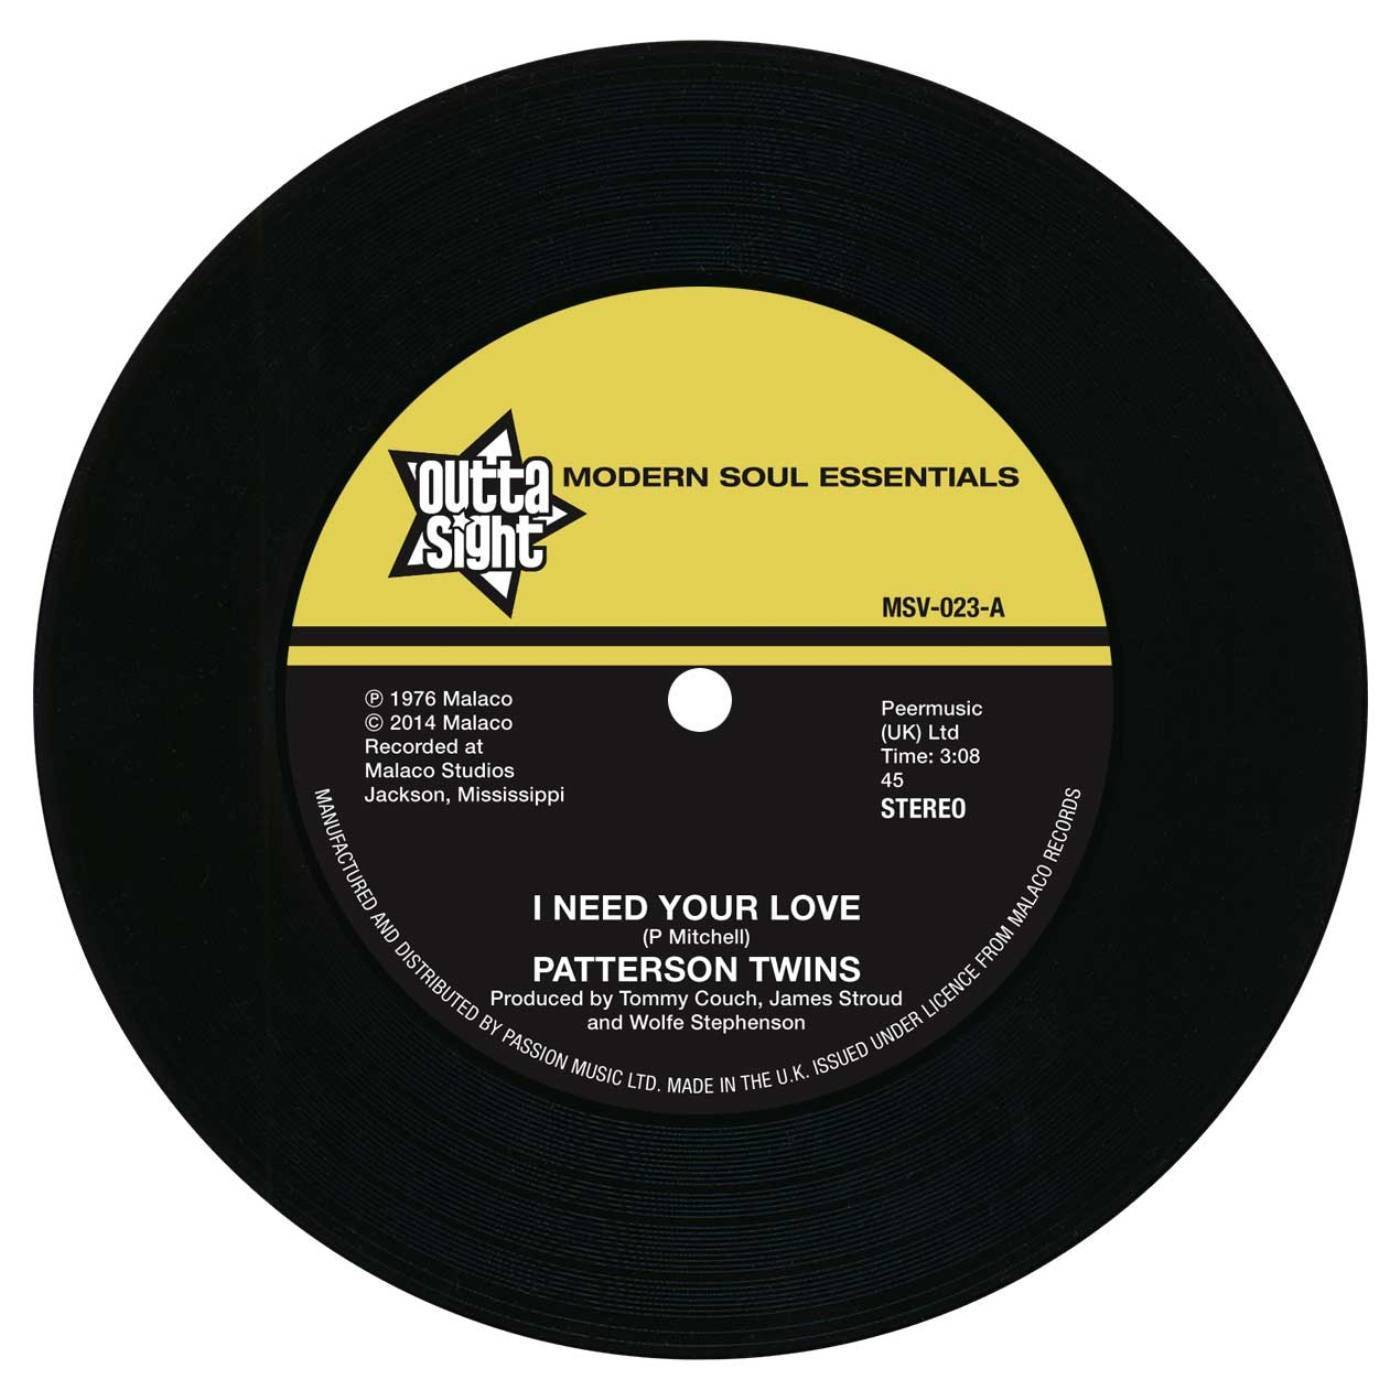 Patterson Twins – I Need Your Love / Richard Caiton – I'm Gonna Love You More 45 (Outta Sight) 7″ Vinyl